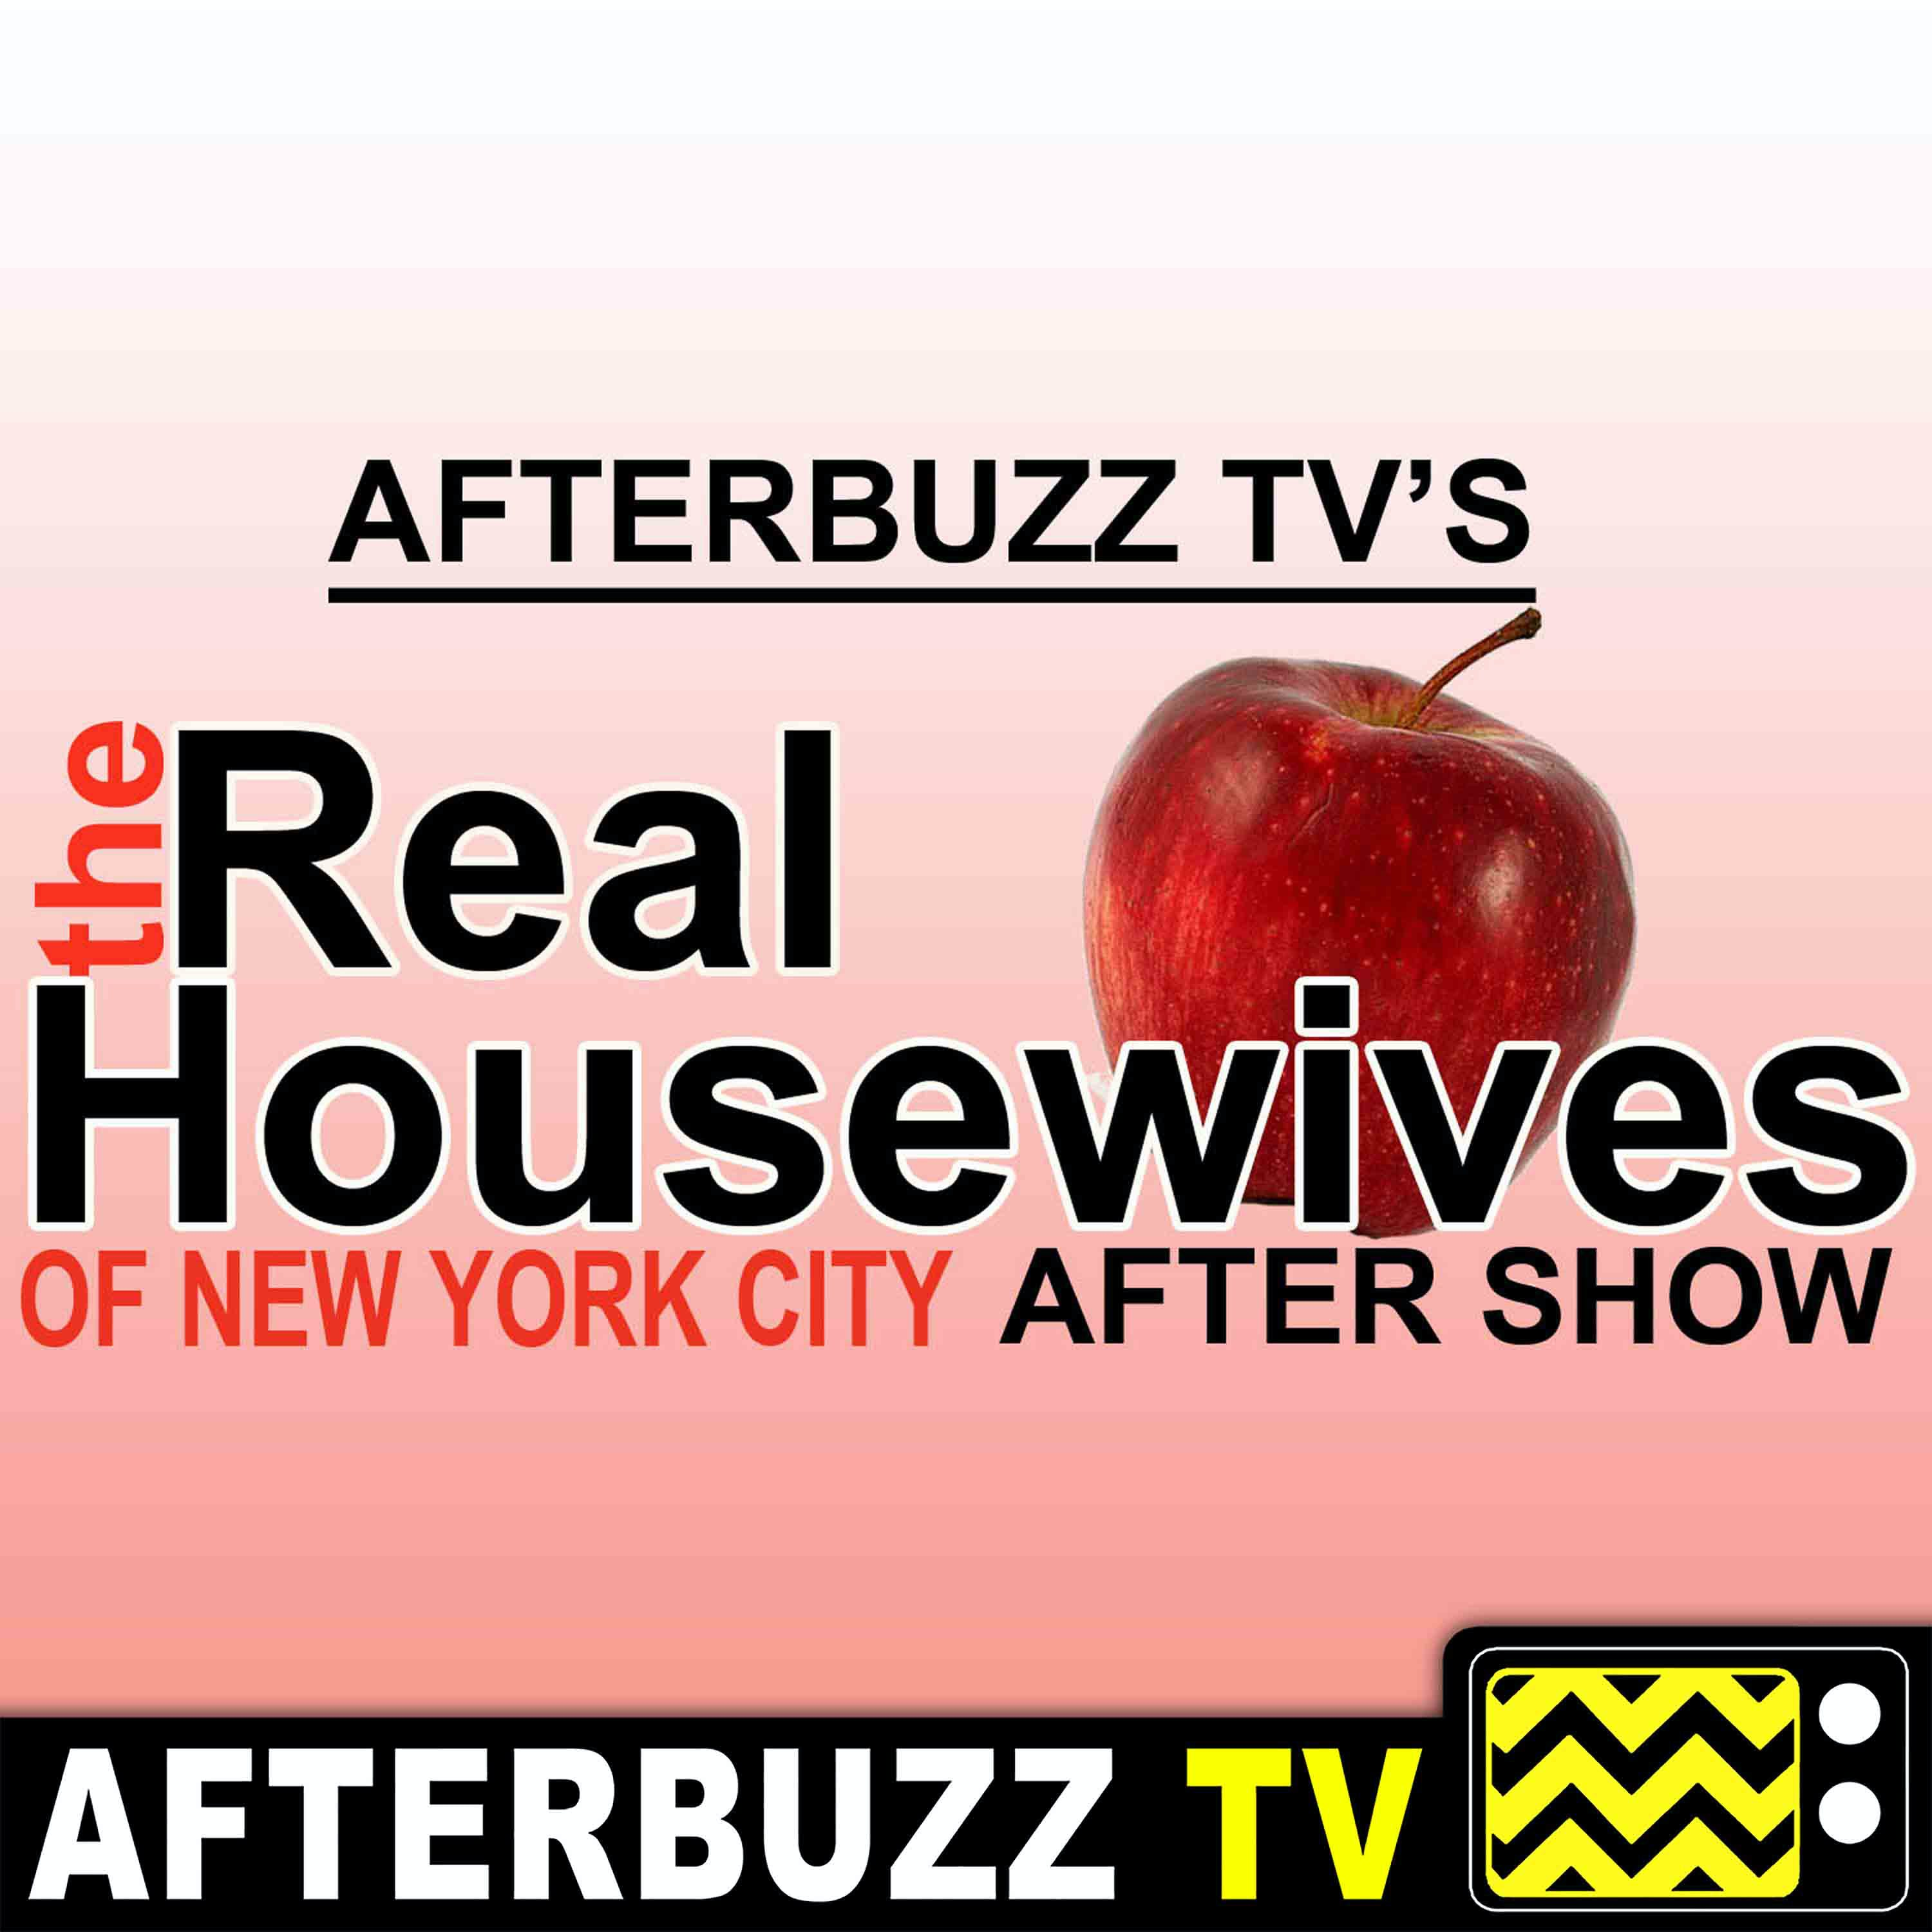 Real Housewives Of New York S12 E6 Recap & After Show: Luann totally slept with the Pirate